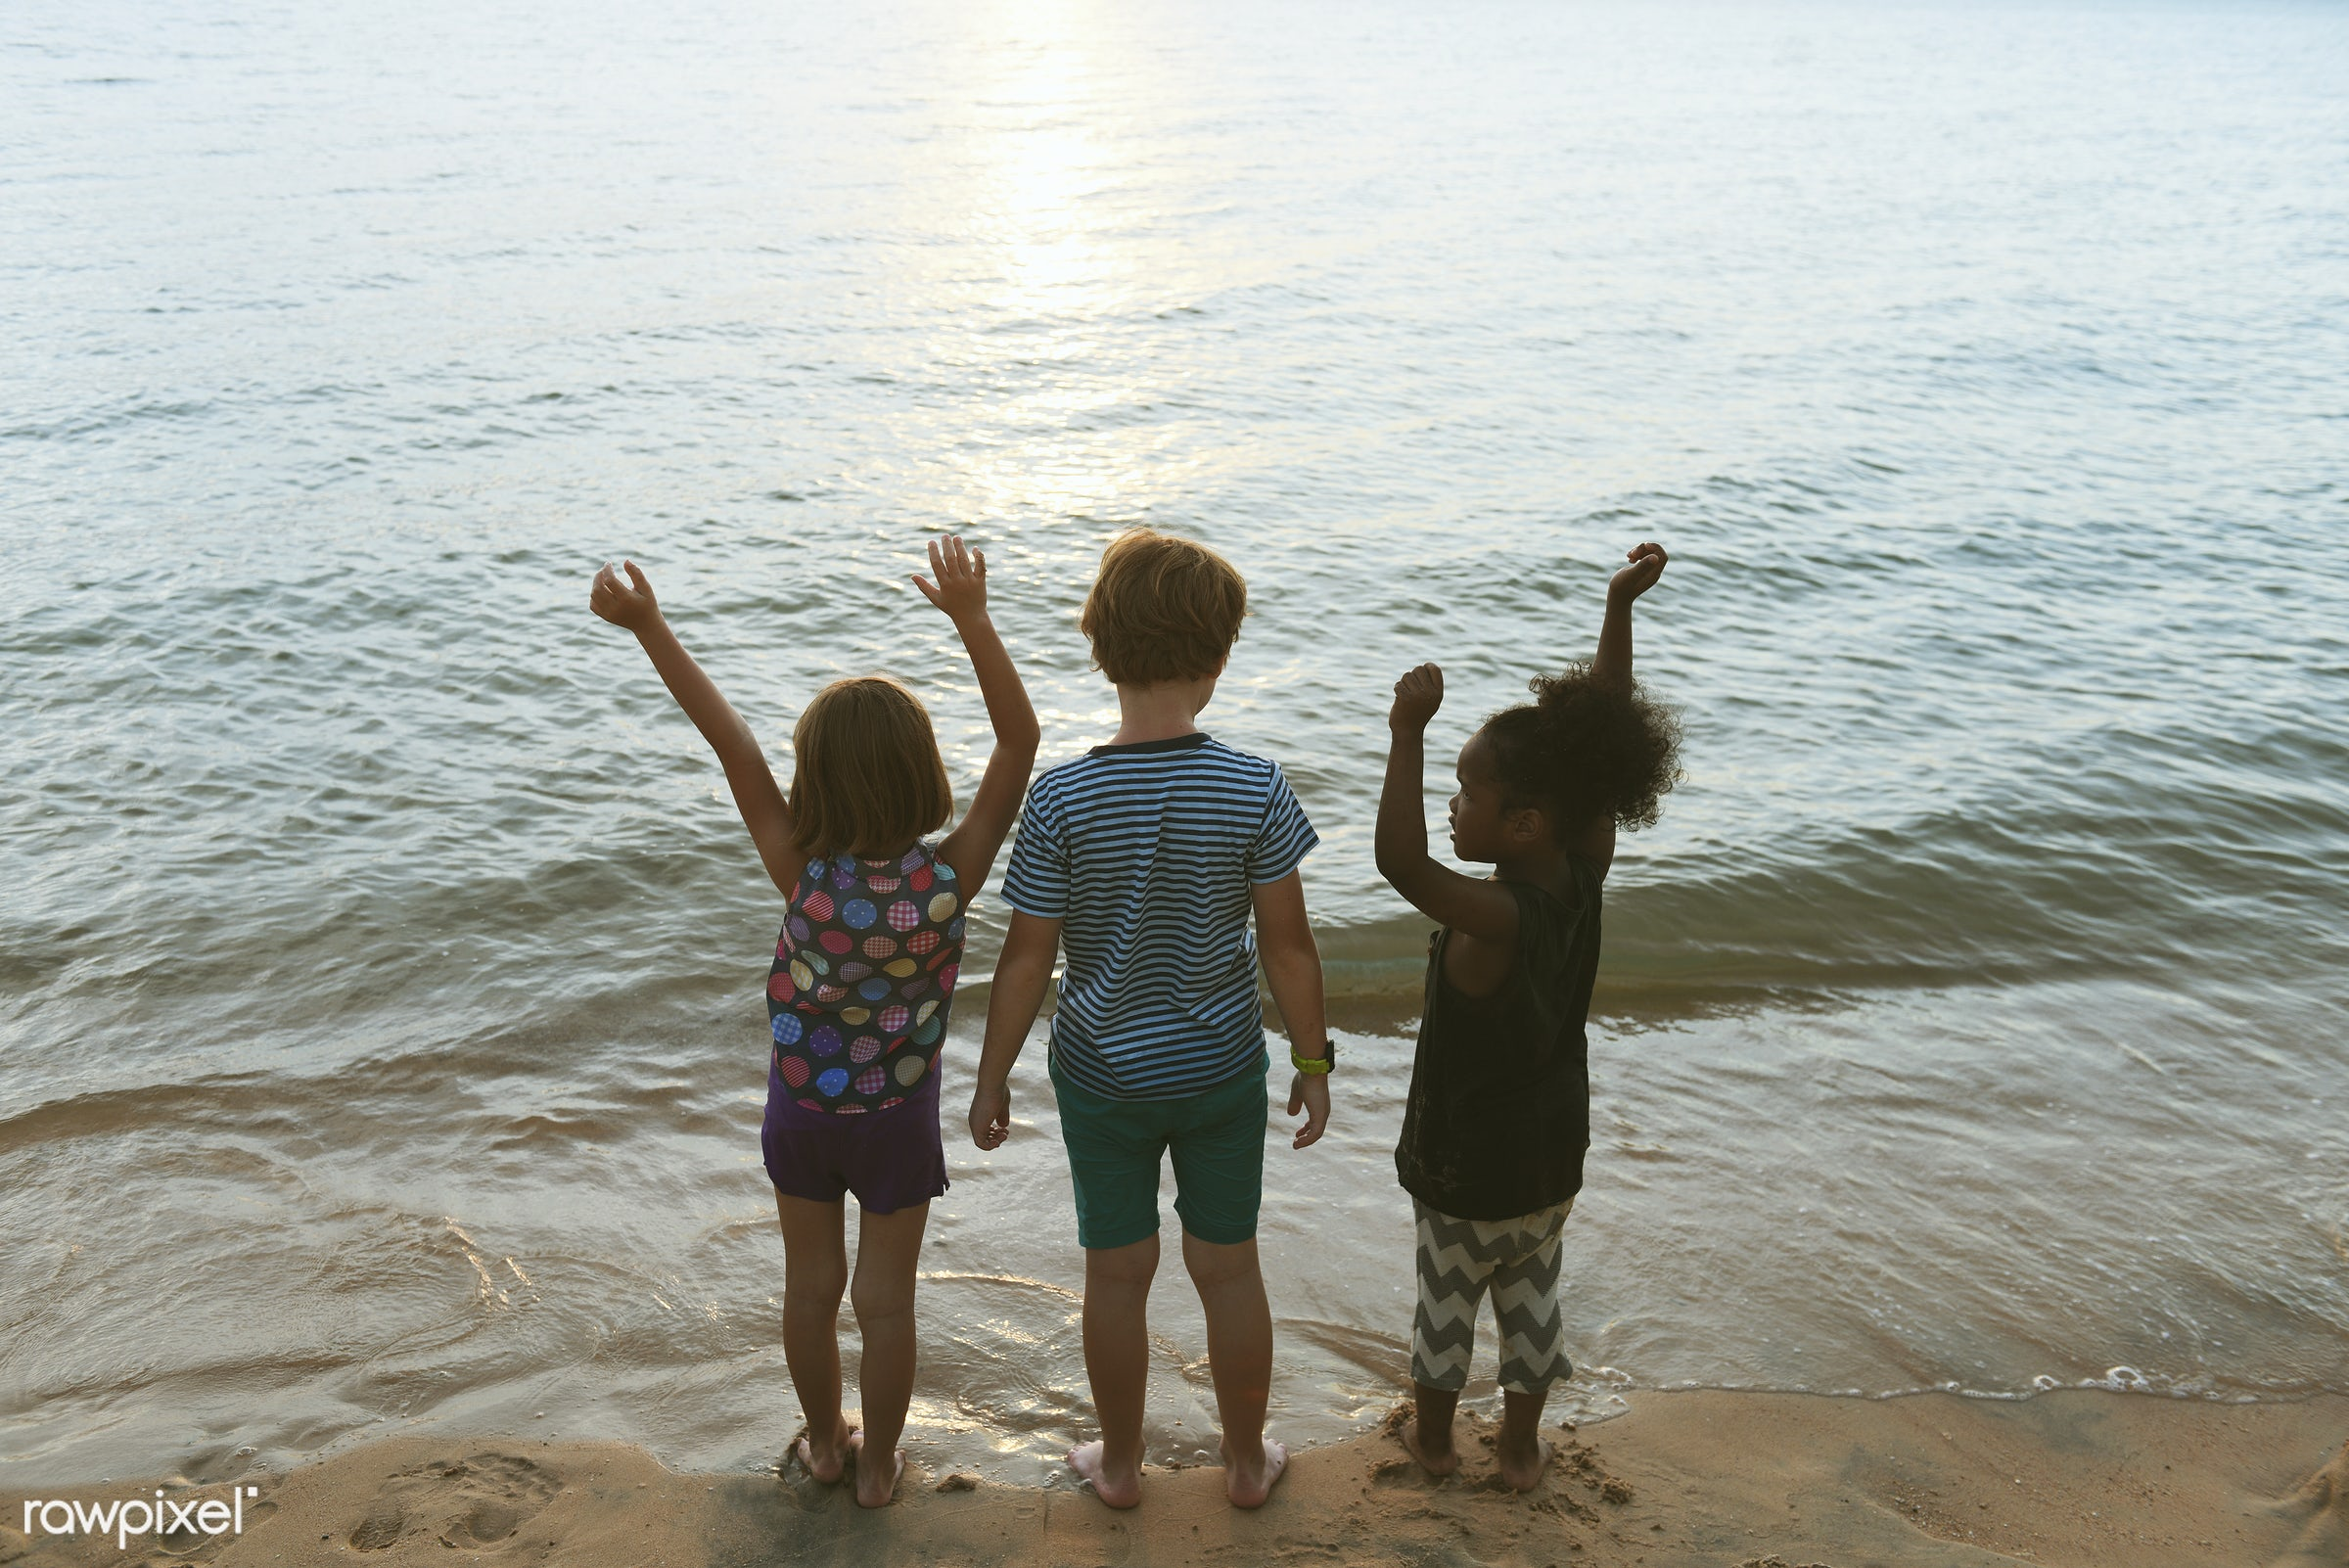 shore, diverse, arms raised, children, beach, playing, girl, nature, sand, sea, fun, kids, young, holiday, vacation, bay,...